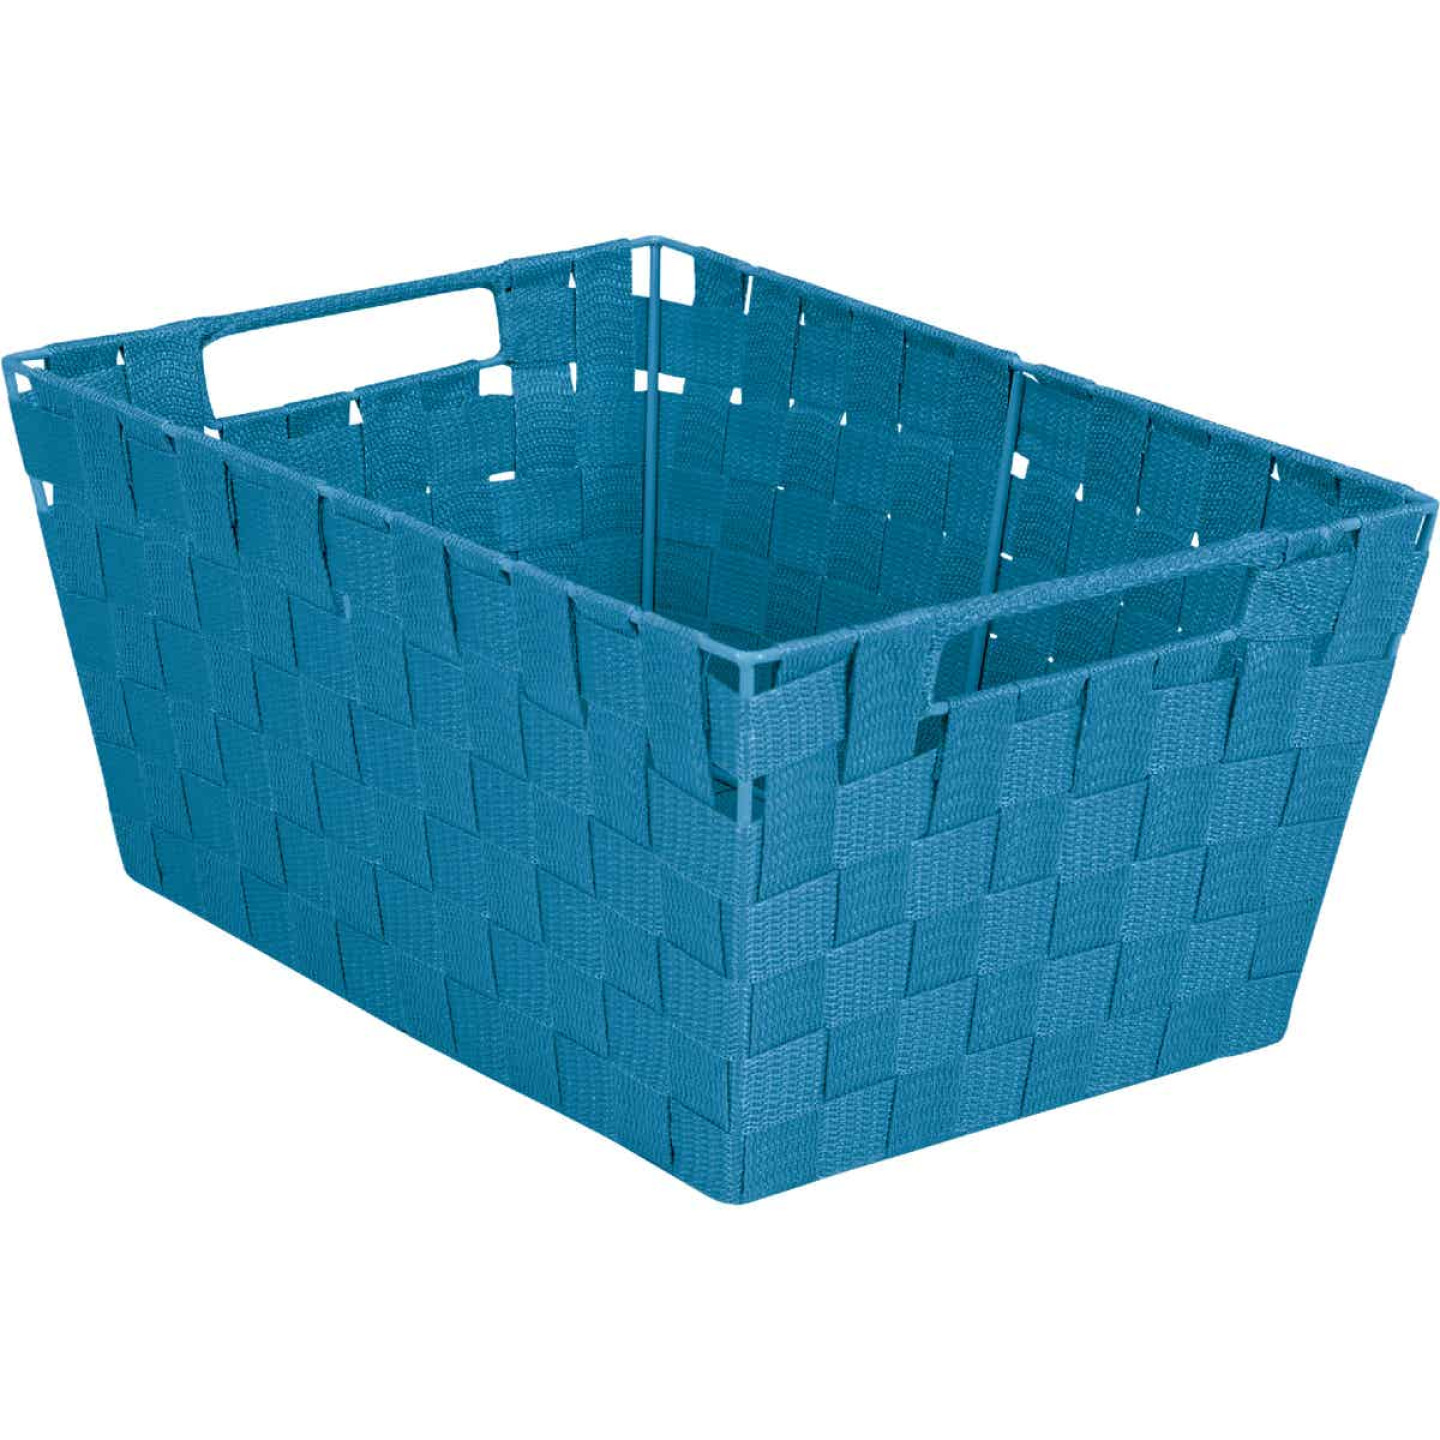 Home Impressions 10 In. W. x 6.75 In. H. x 14 In. L. Woven Storage Basket with Handles, Blue Image 1